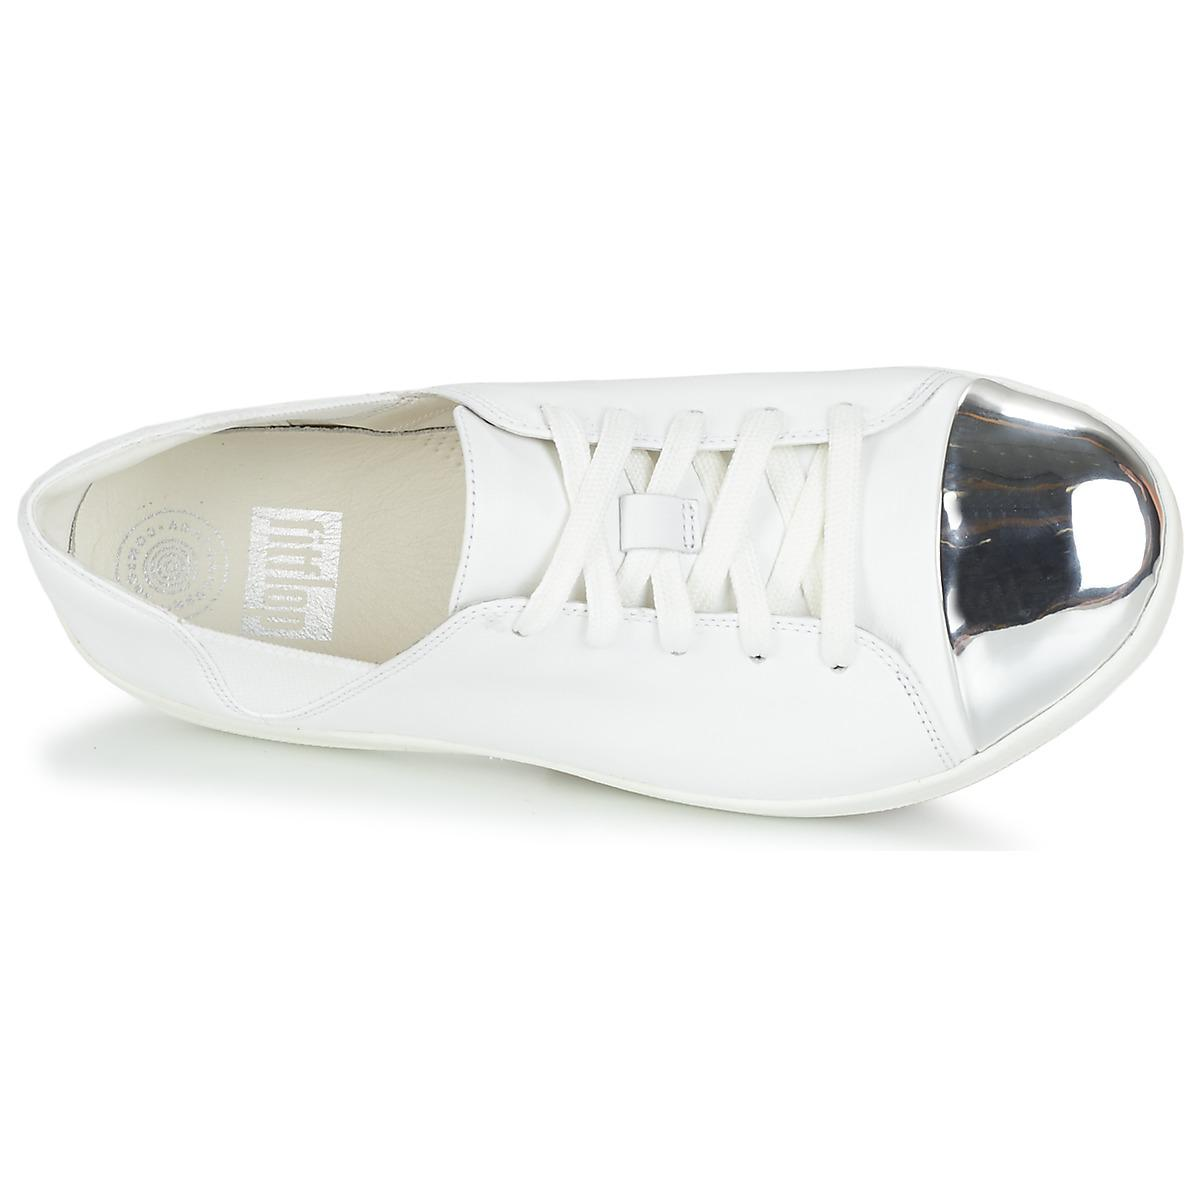 Fitflop F-sporty Mirror-toe Sneakers Women's Trainers In White